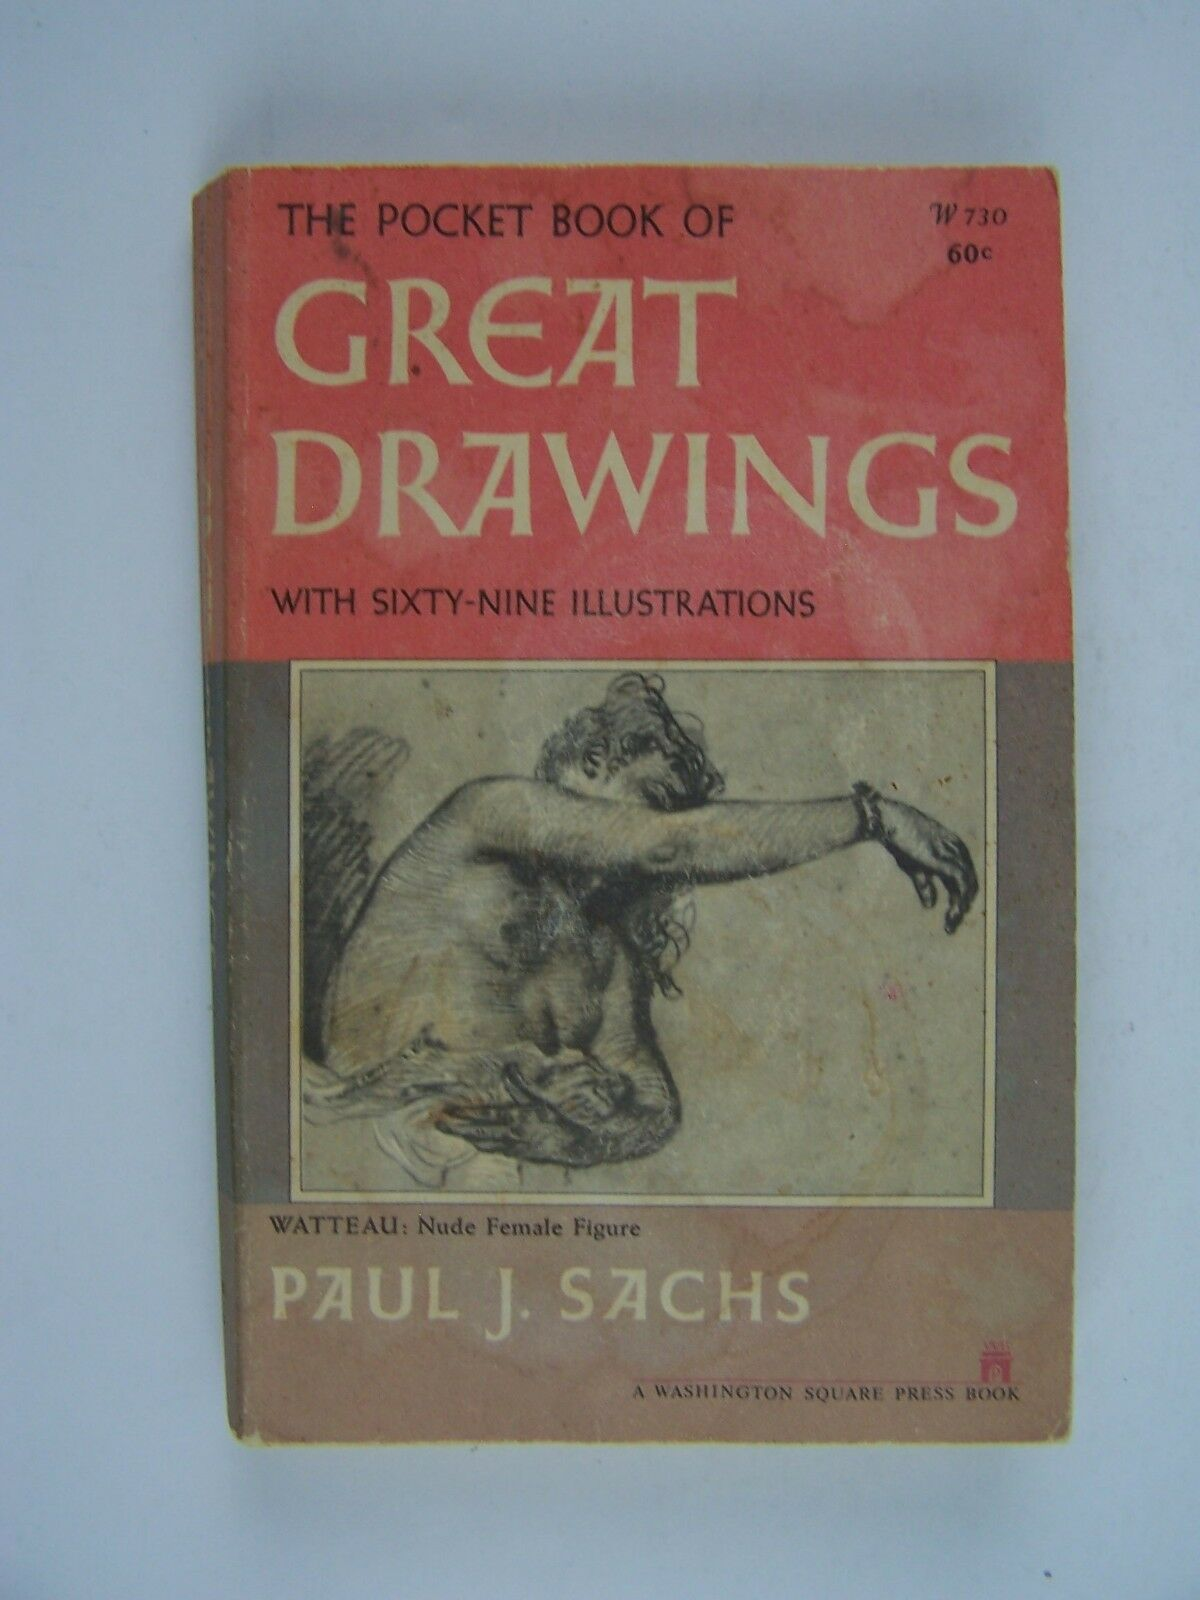 The Pocket Book of Great Drawings Paperback 1951 by Pau